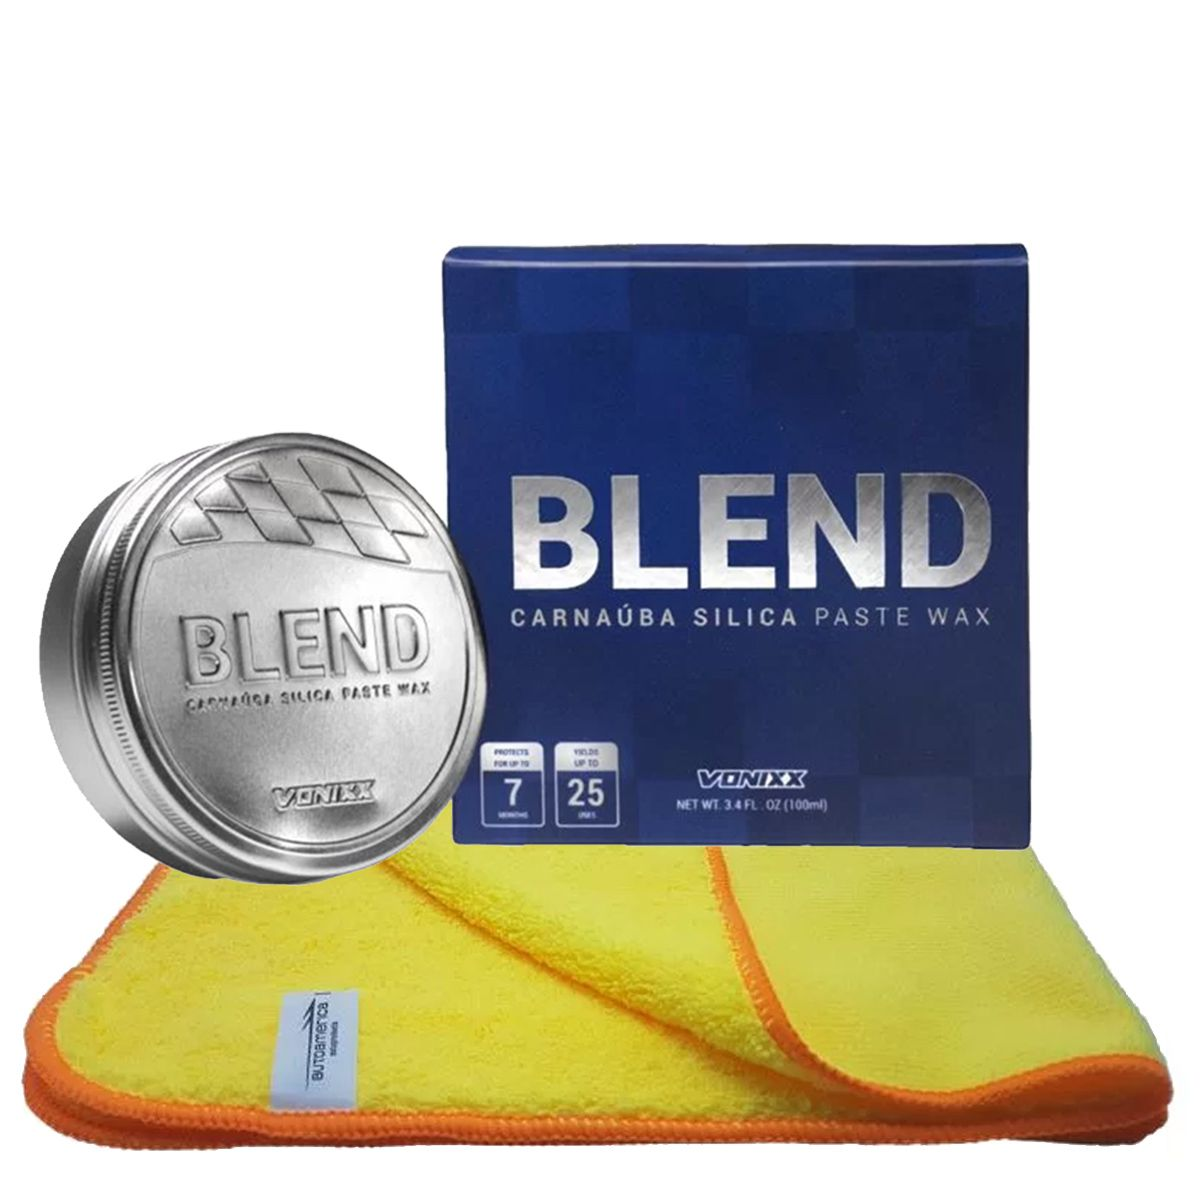 Kit Cera de Carnaúba Paste Wax Blend 100ml + Flanela 60x40 Autoamerica